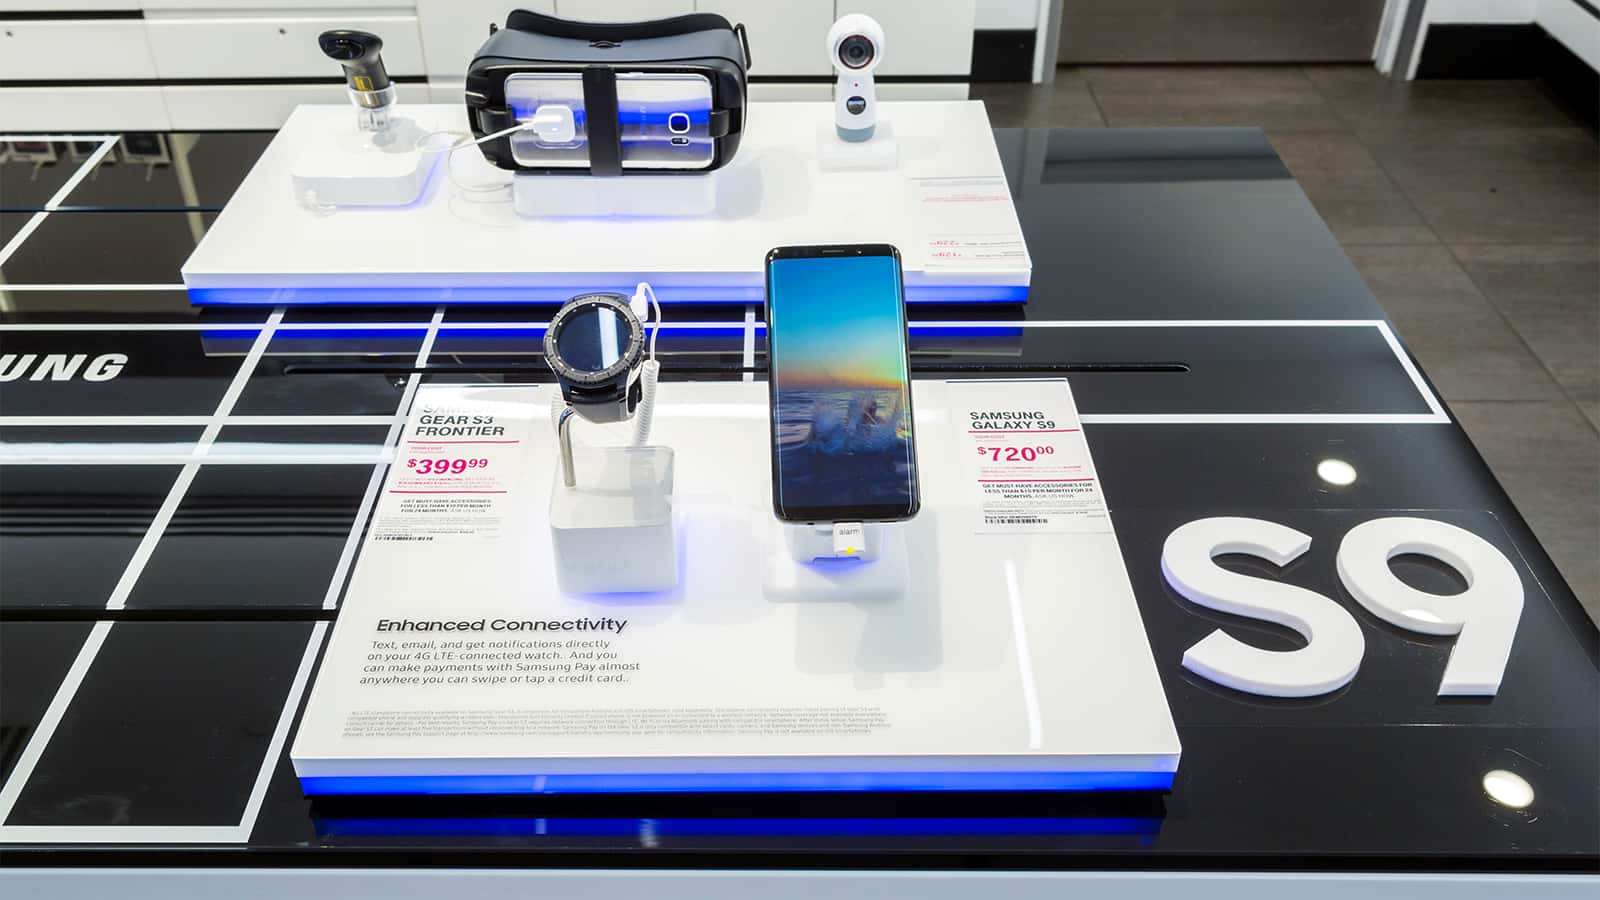 Close-up of a quad configuration of the Samsung S9 interactive display.